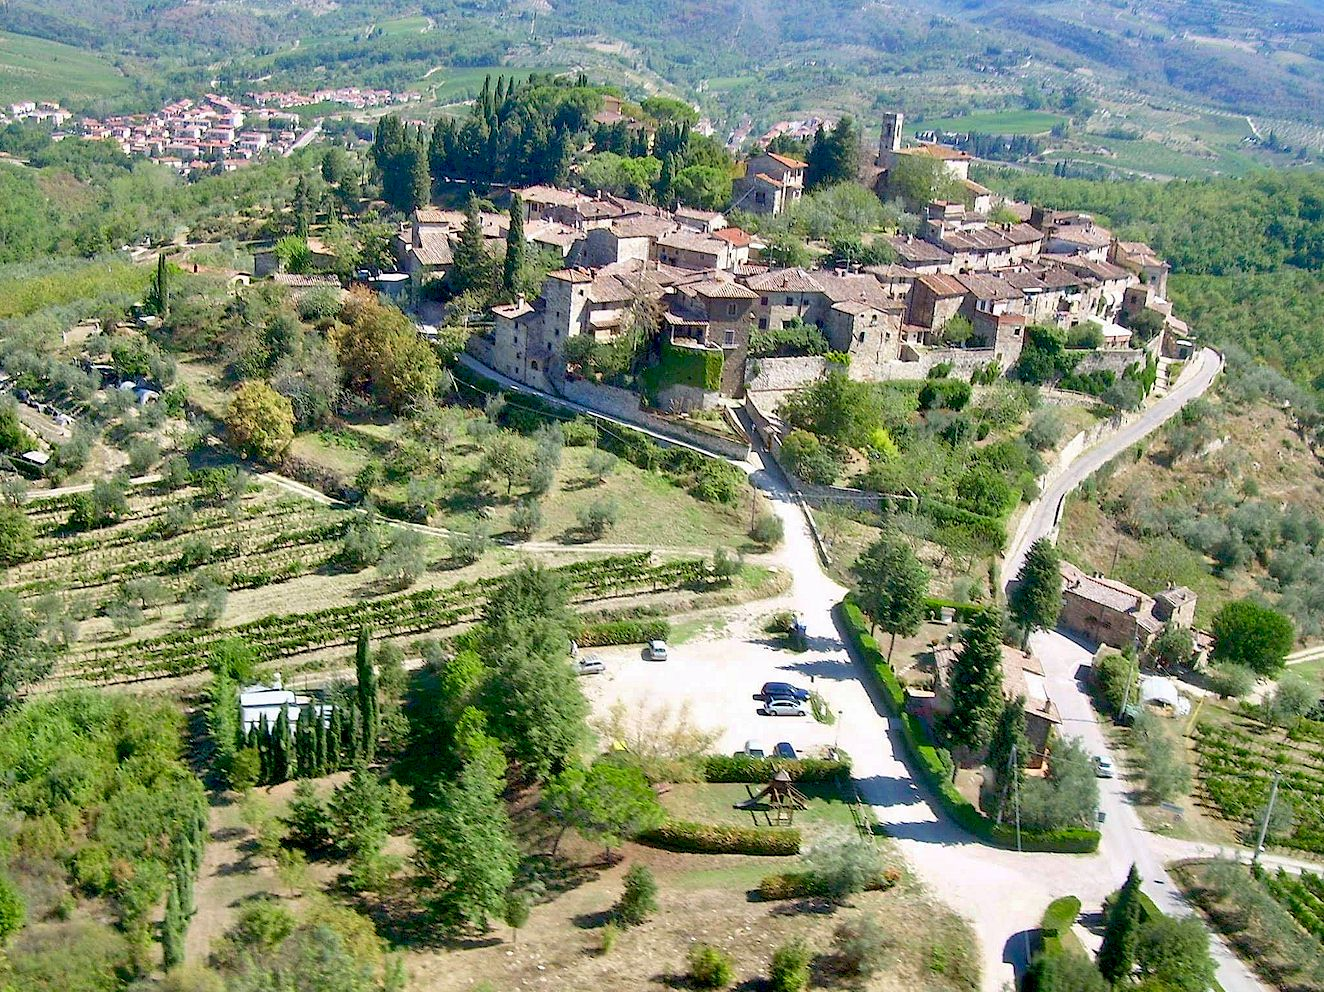 Montefioralle from above